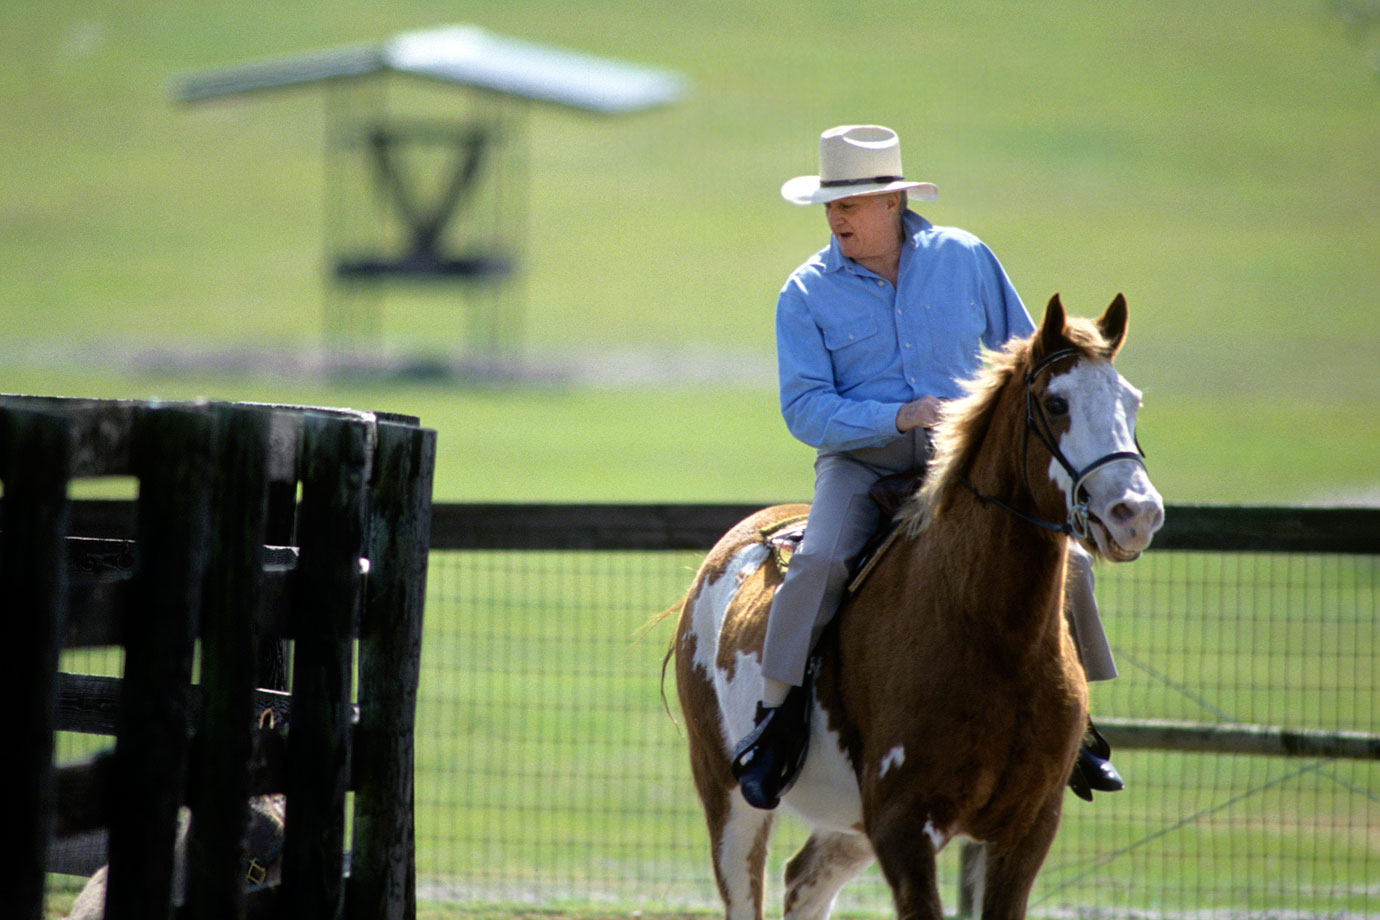 George Steinbrenner rides a horse on Feb. 15, 1993 at his home in Tampa, Fla.